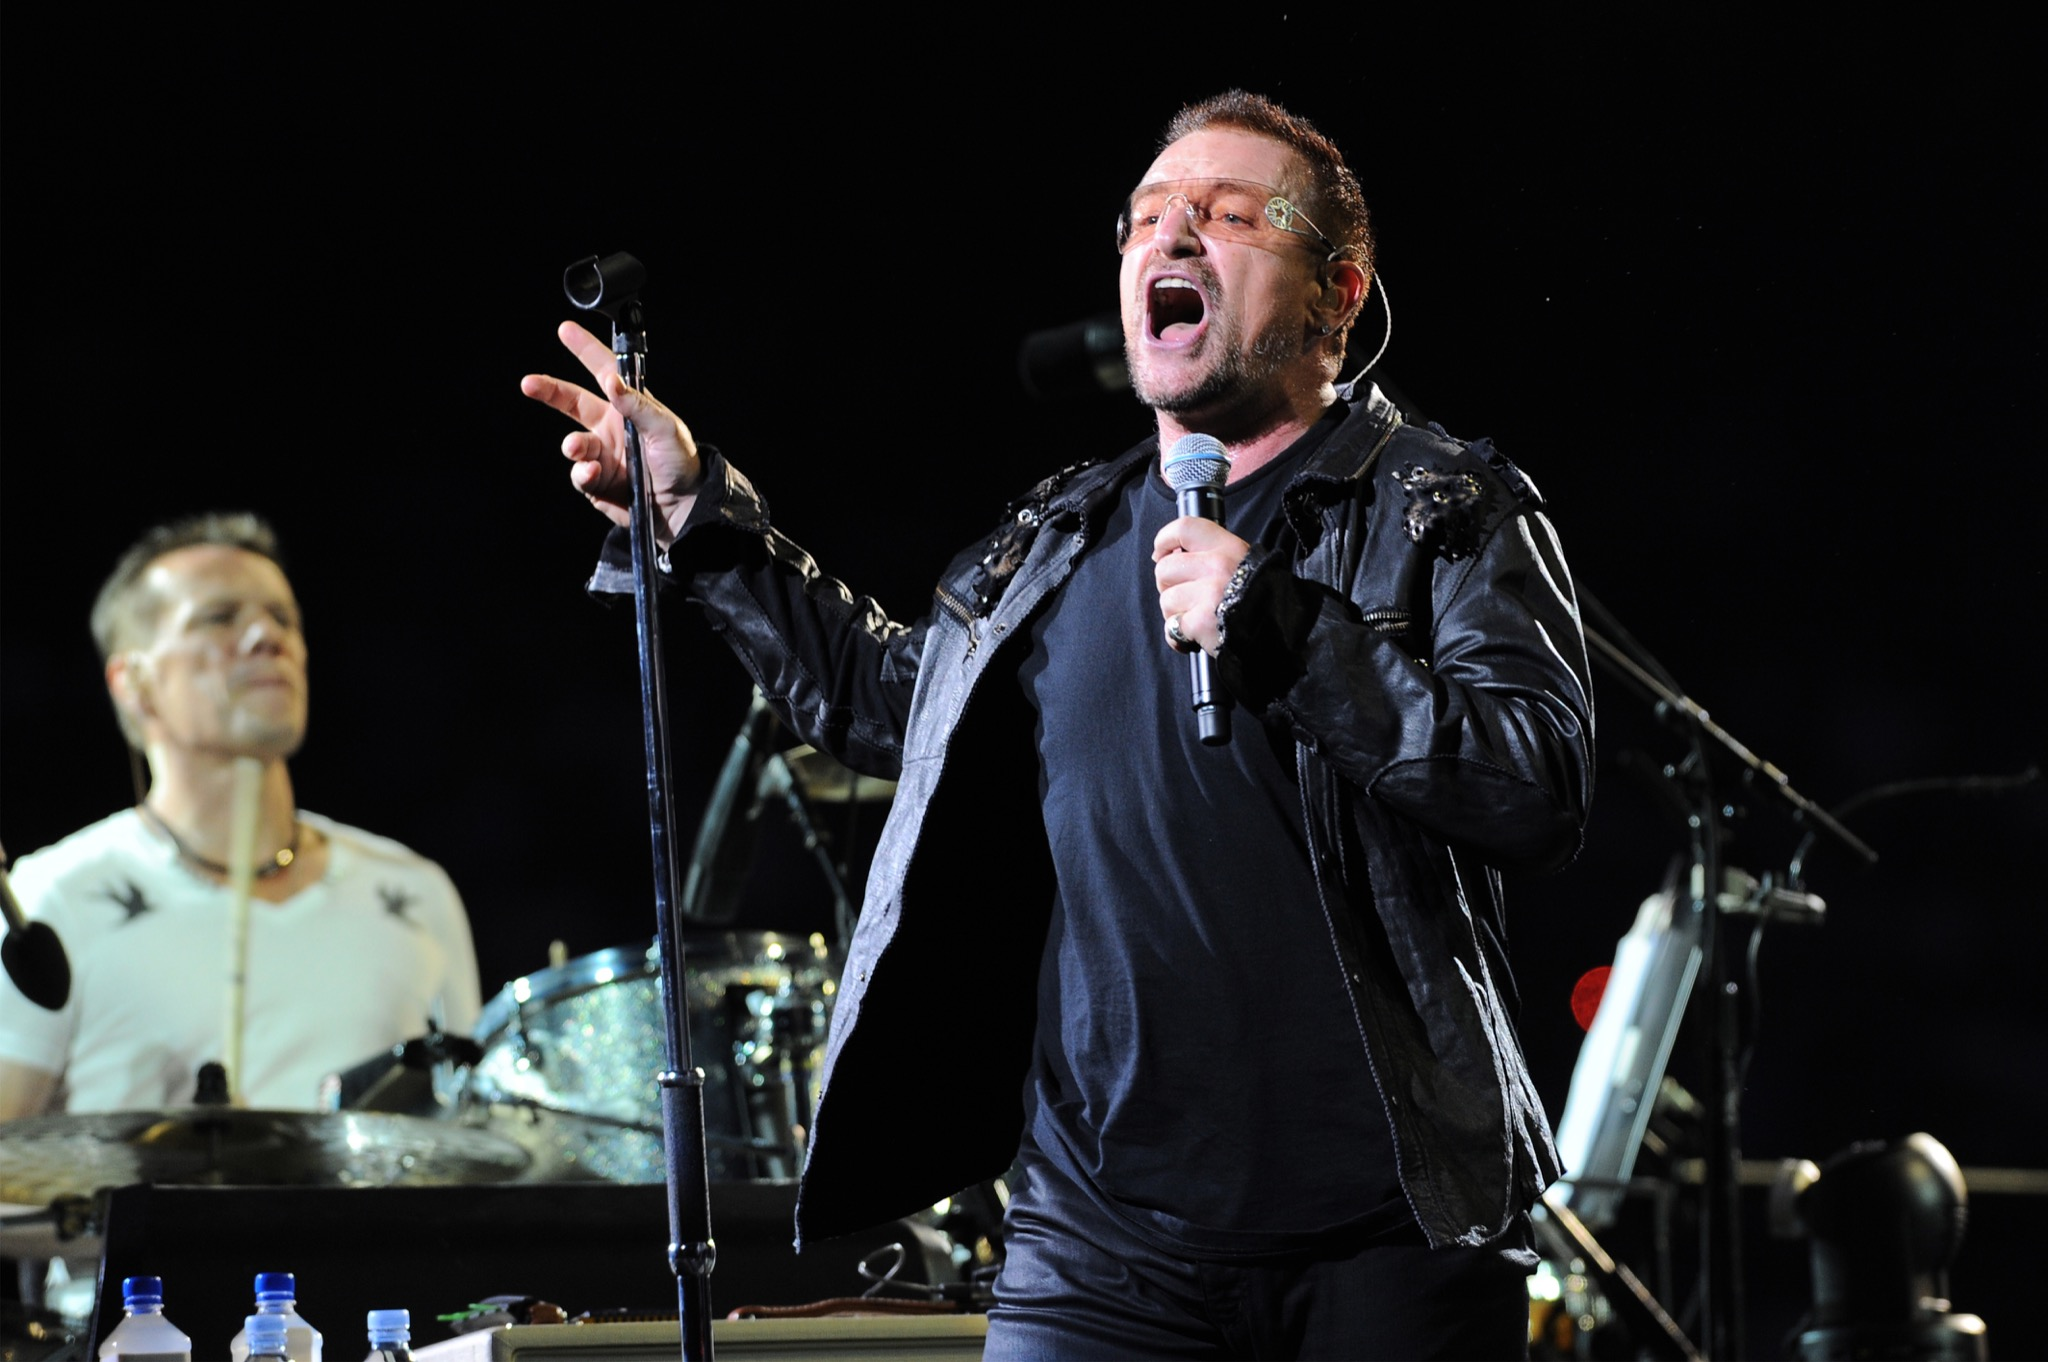 Bono singing in a concert